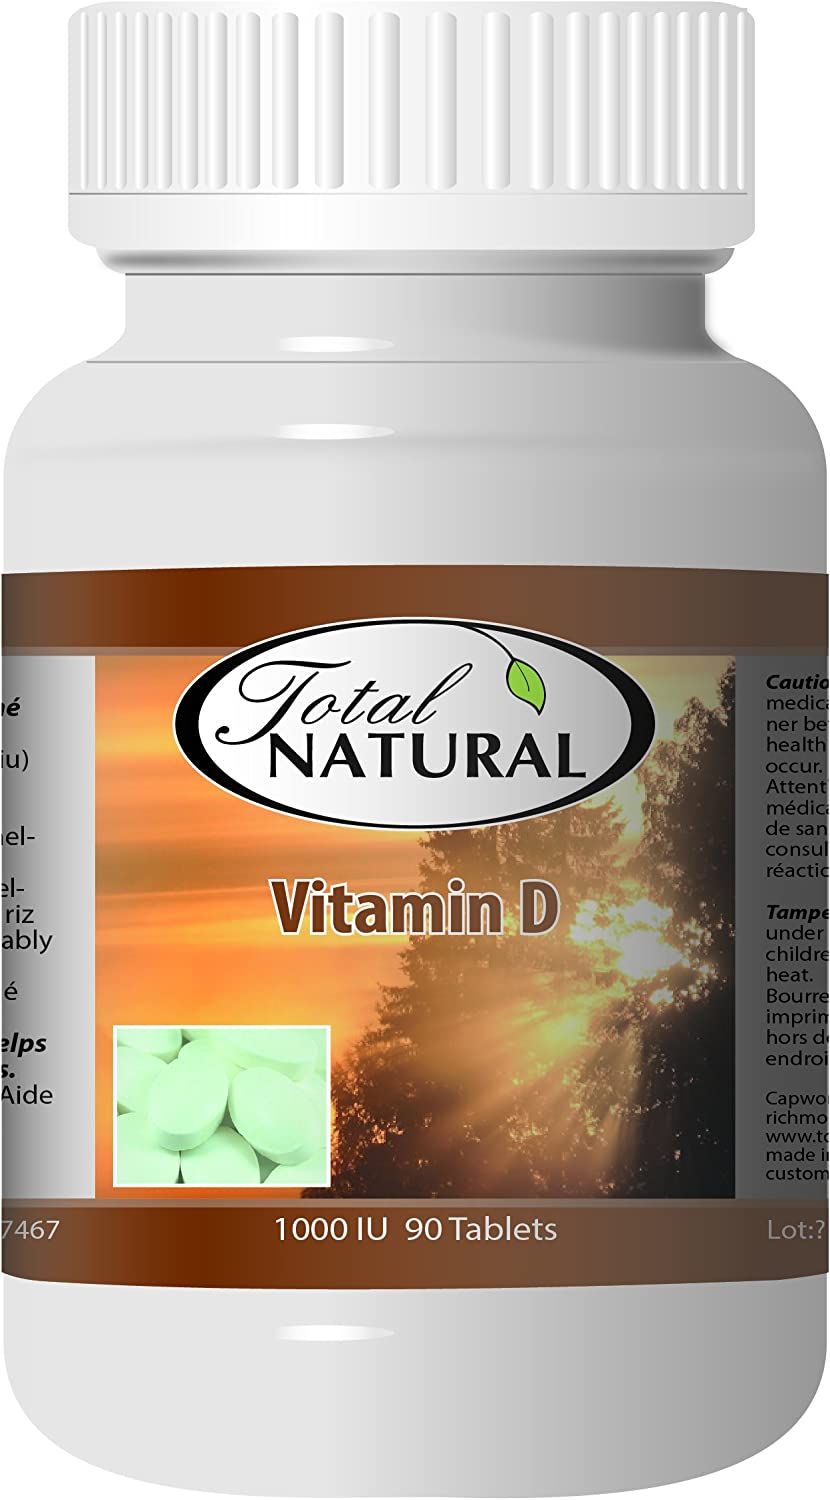 Vitamin D 1000 iu 90 NEW before selling ☆ Count Tablets Natural Total by Bottles SALENEW very popular! 12